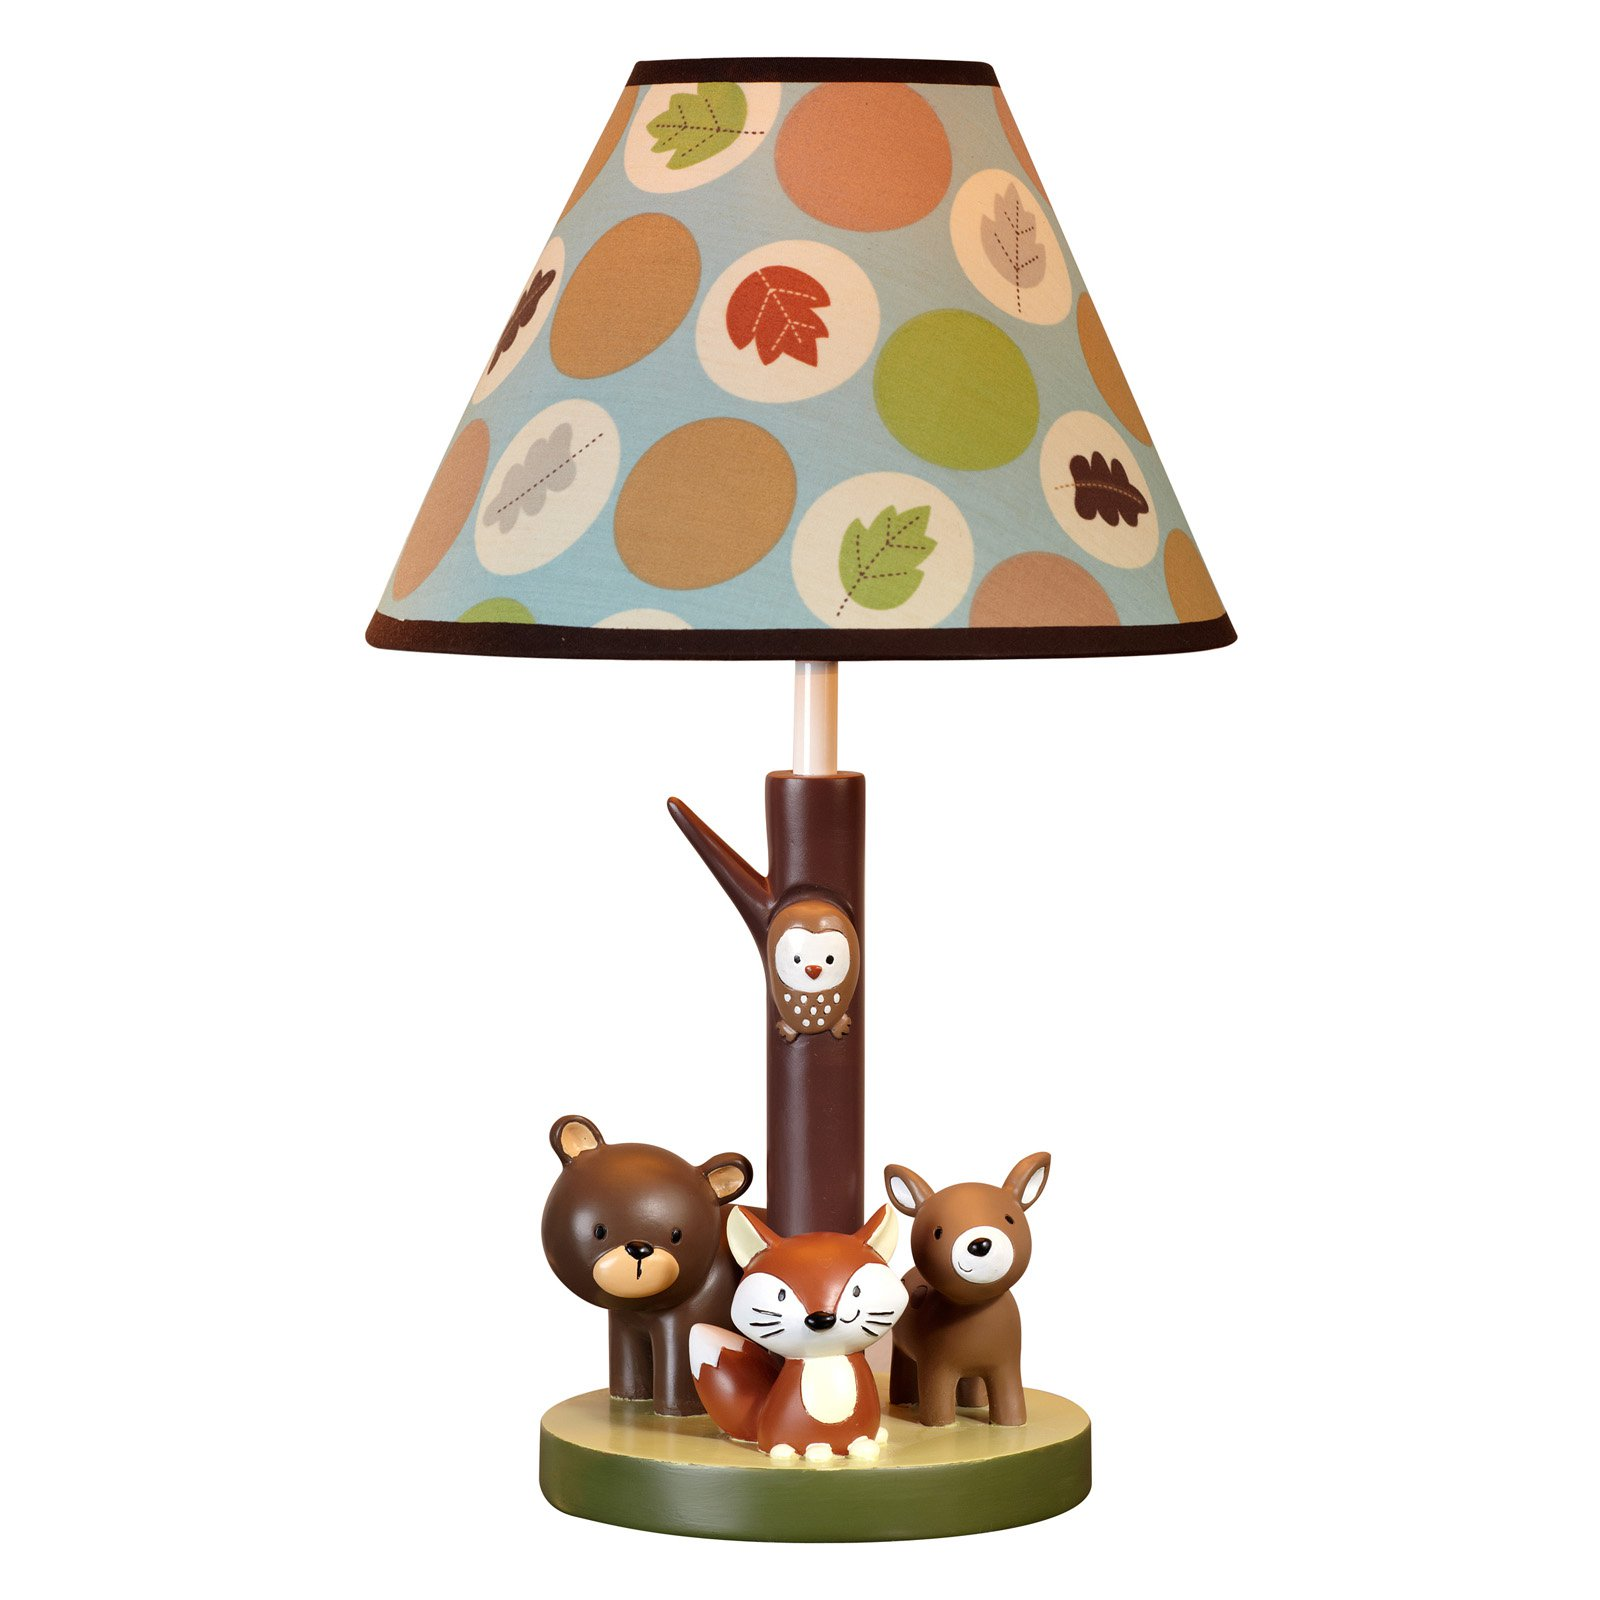 Carter's Friends Table Lamp